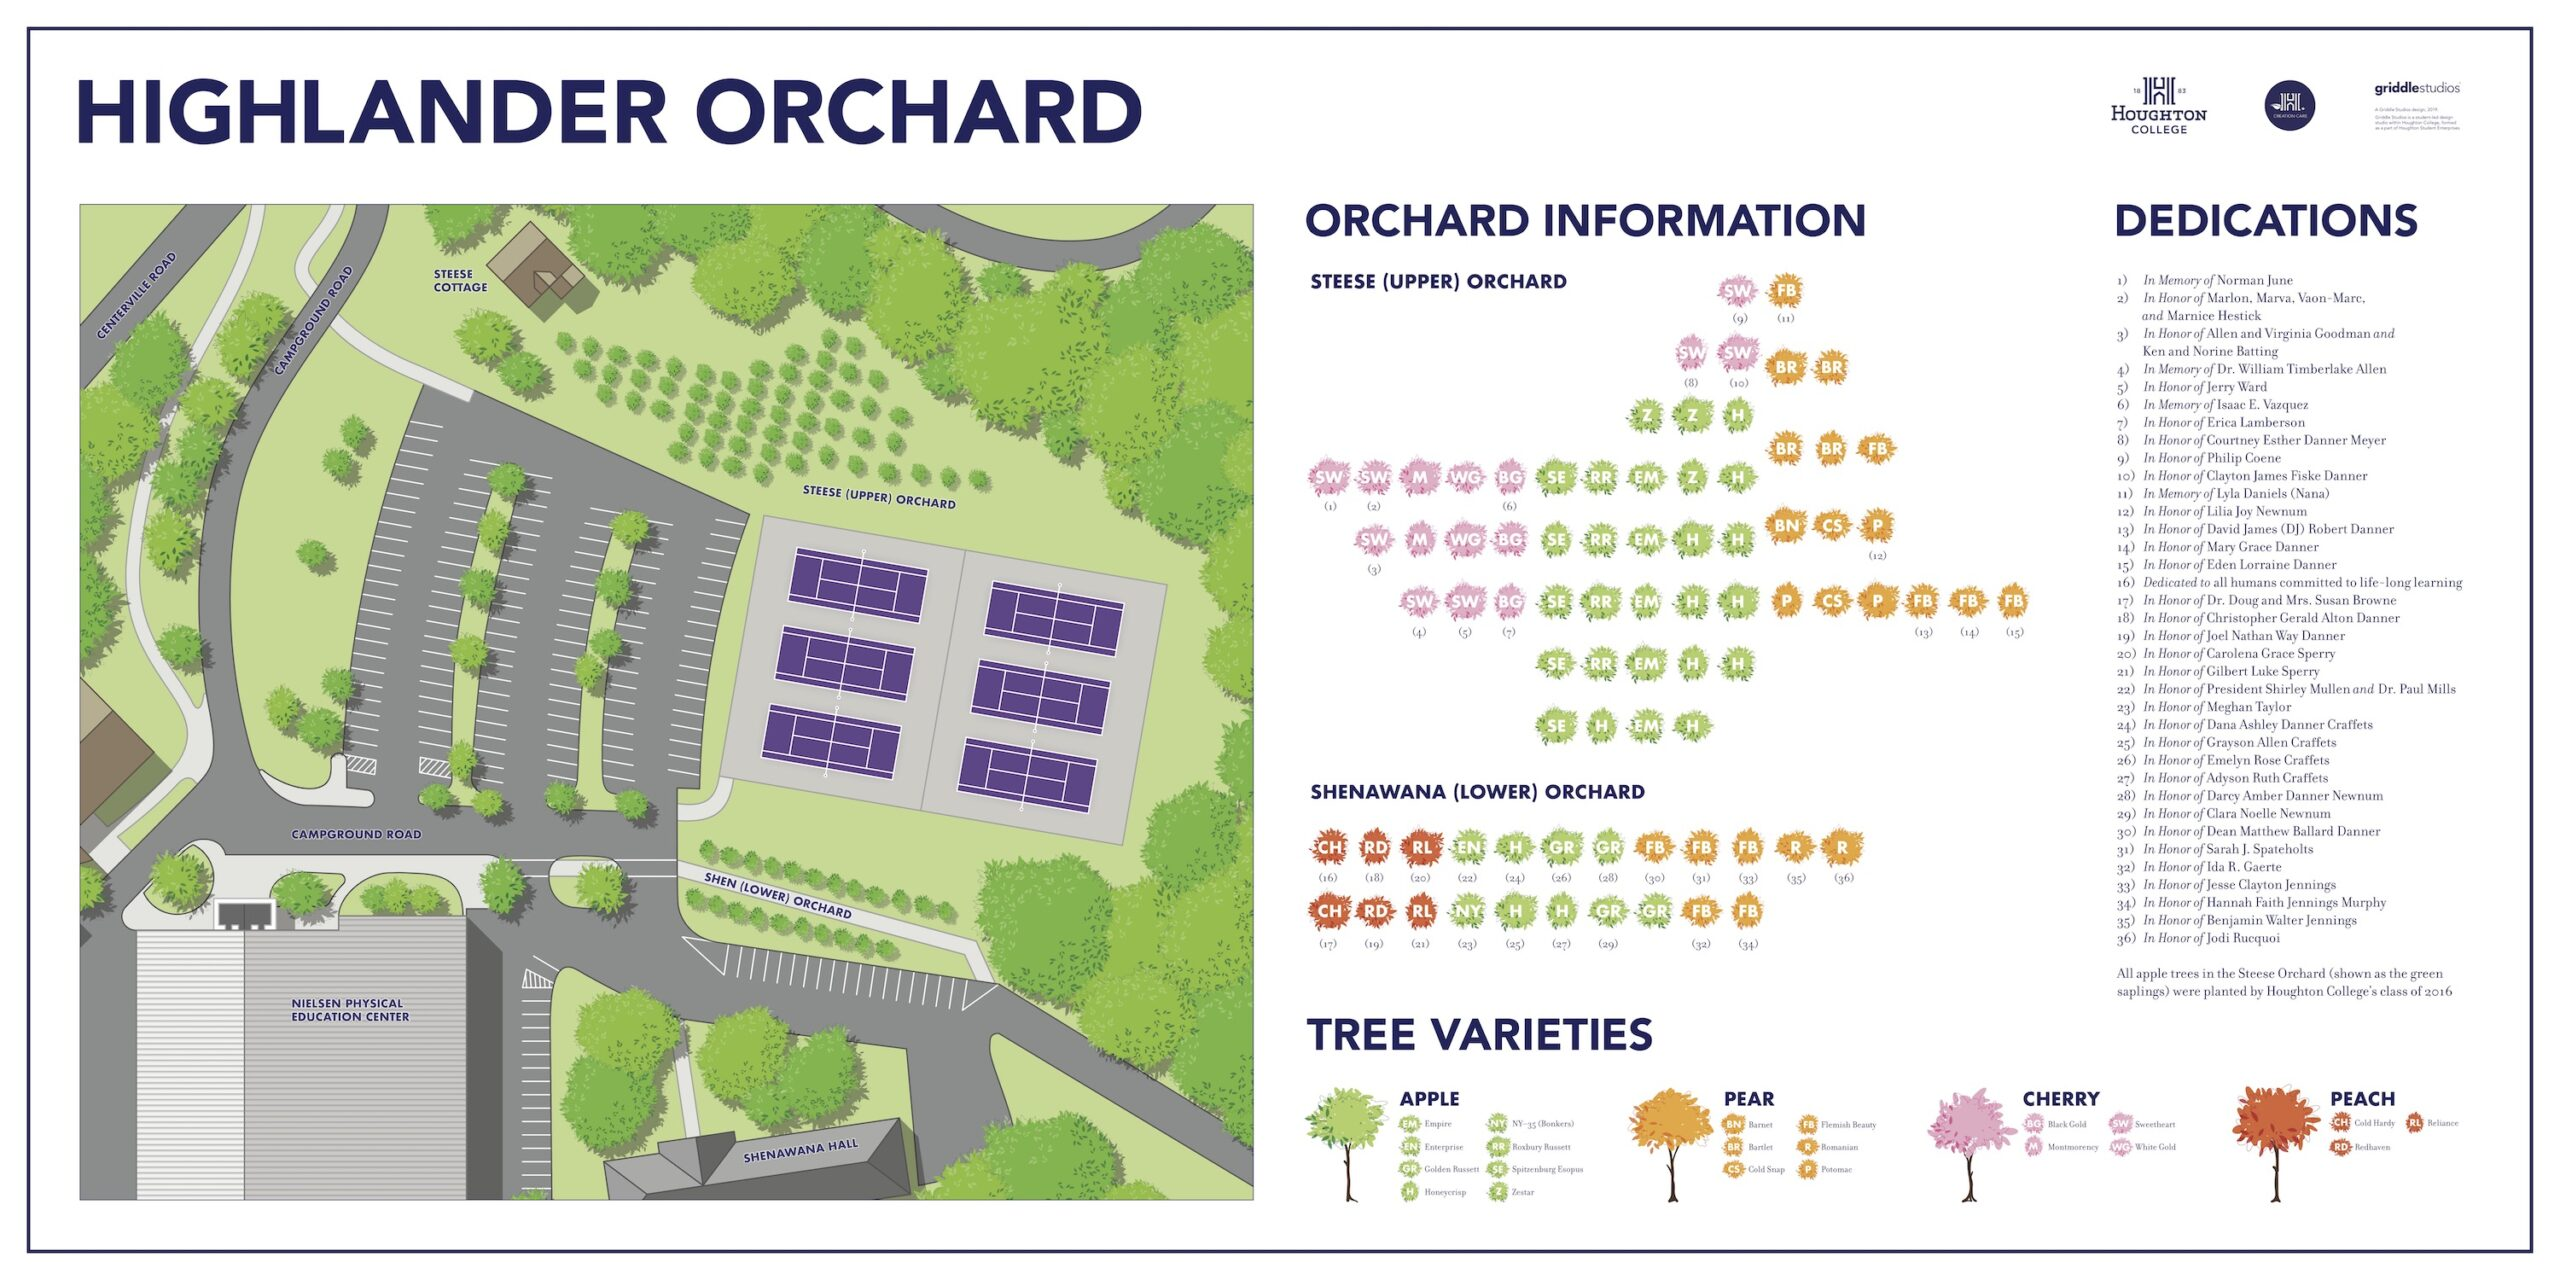 map of Highlander Orchard beside parking lot near Shenawana Hall and Nielsen Center